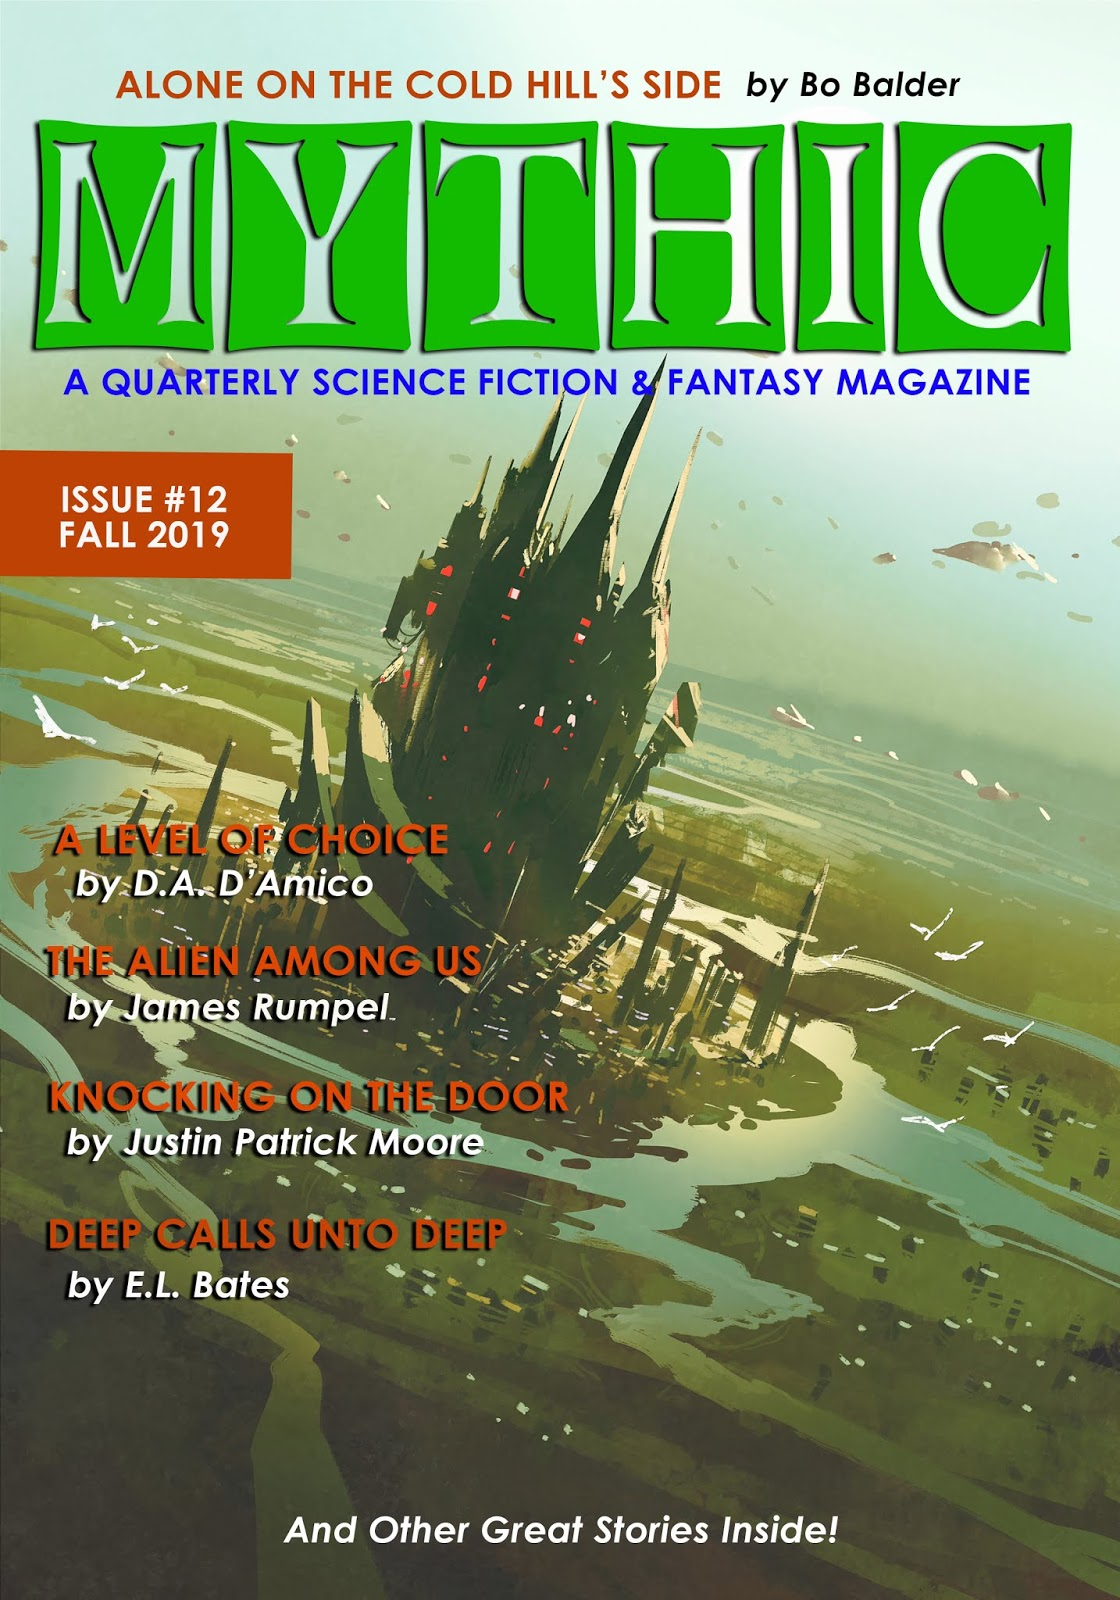 LATEST ISSUE OF MYTHIC